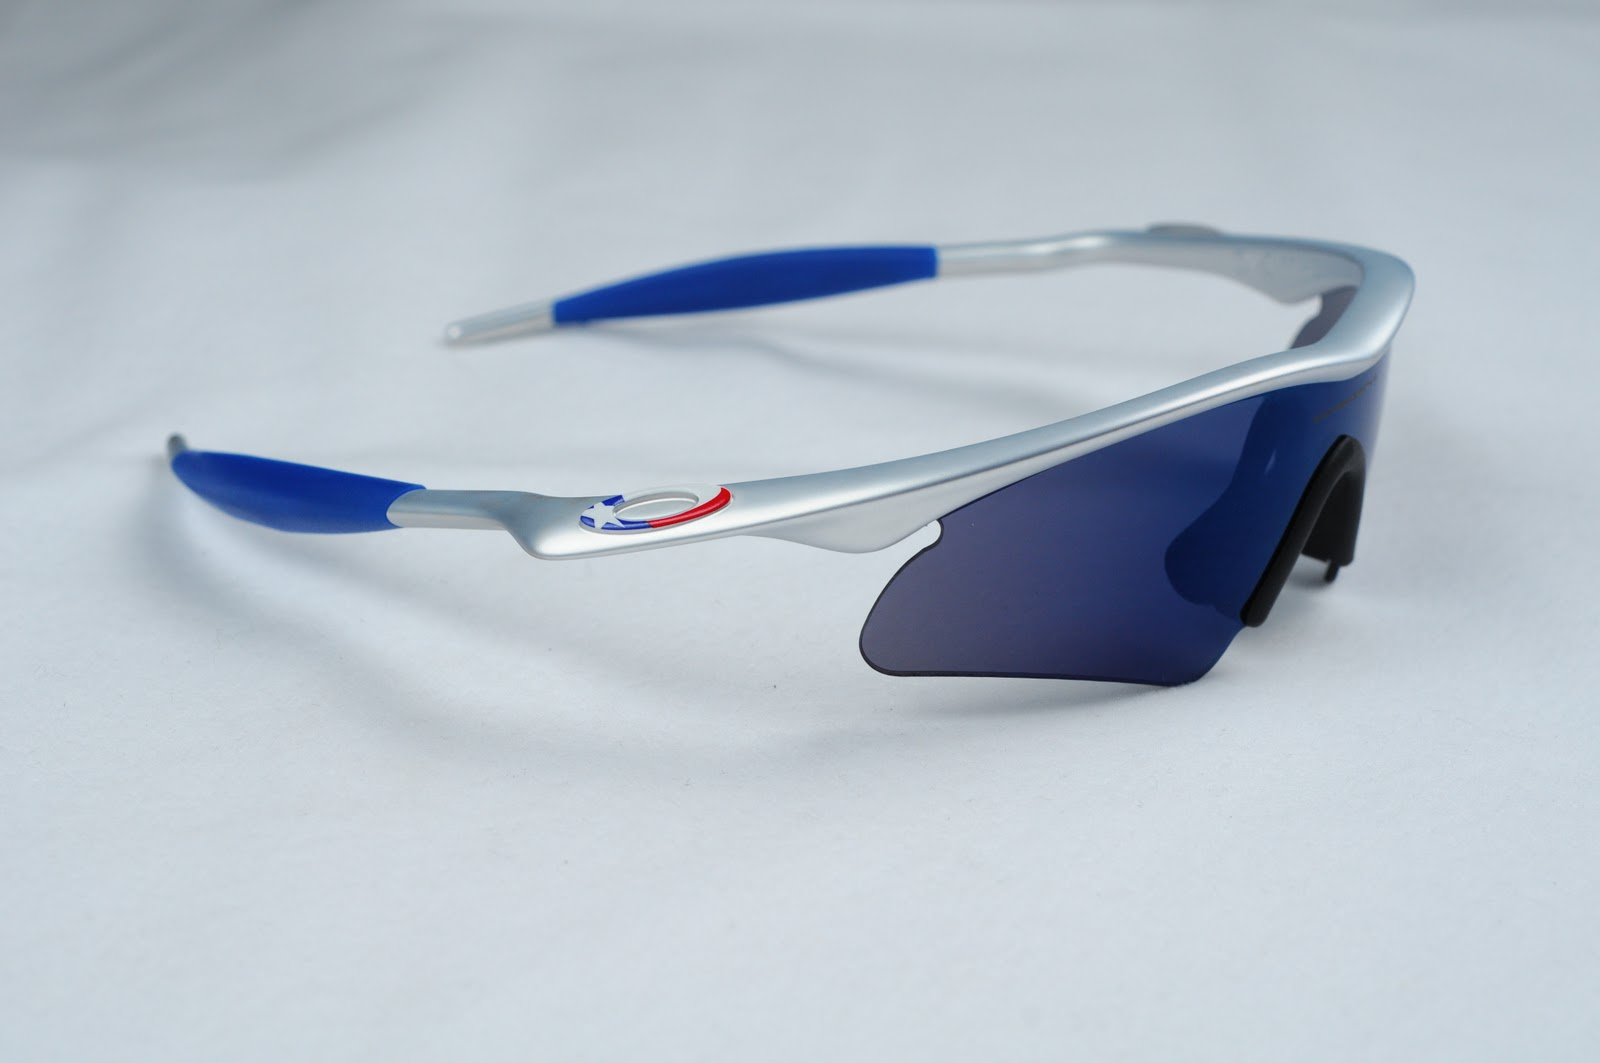 607cbc3e59b Pro M   M Frame Collection. Posted by oakley collector